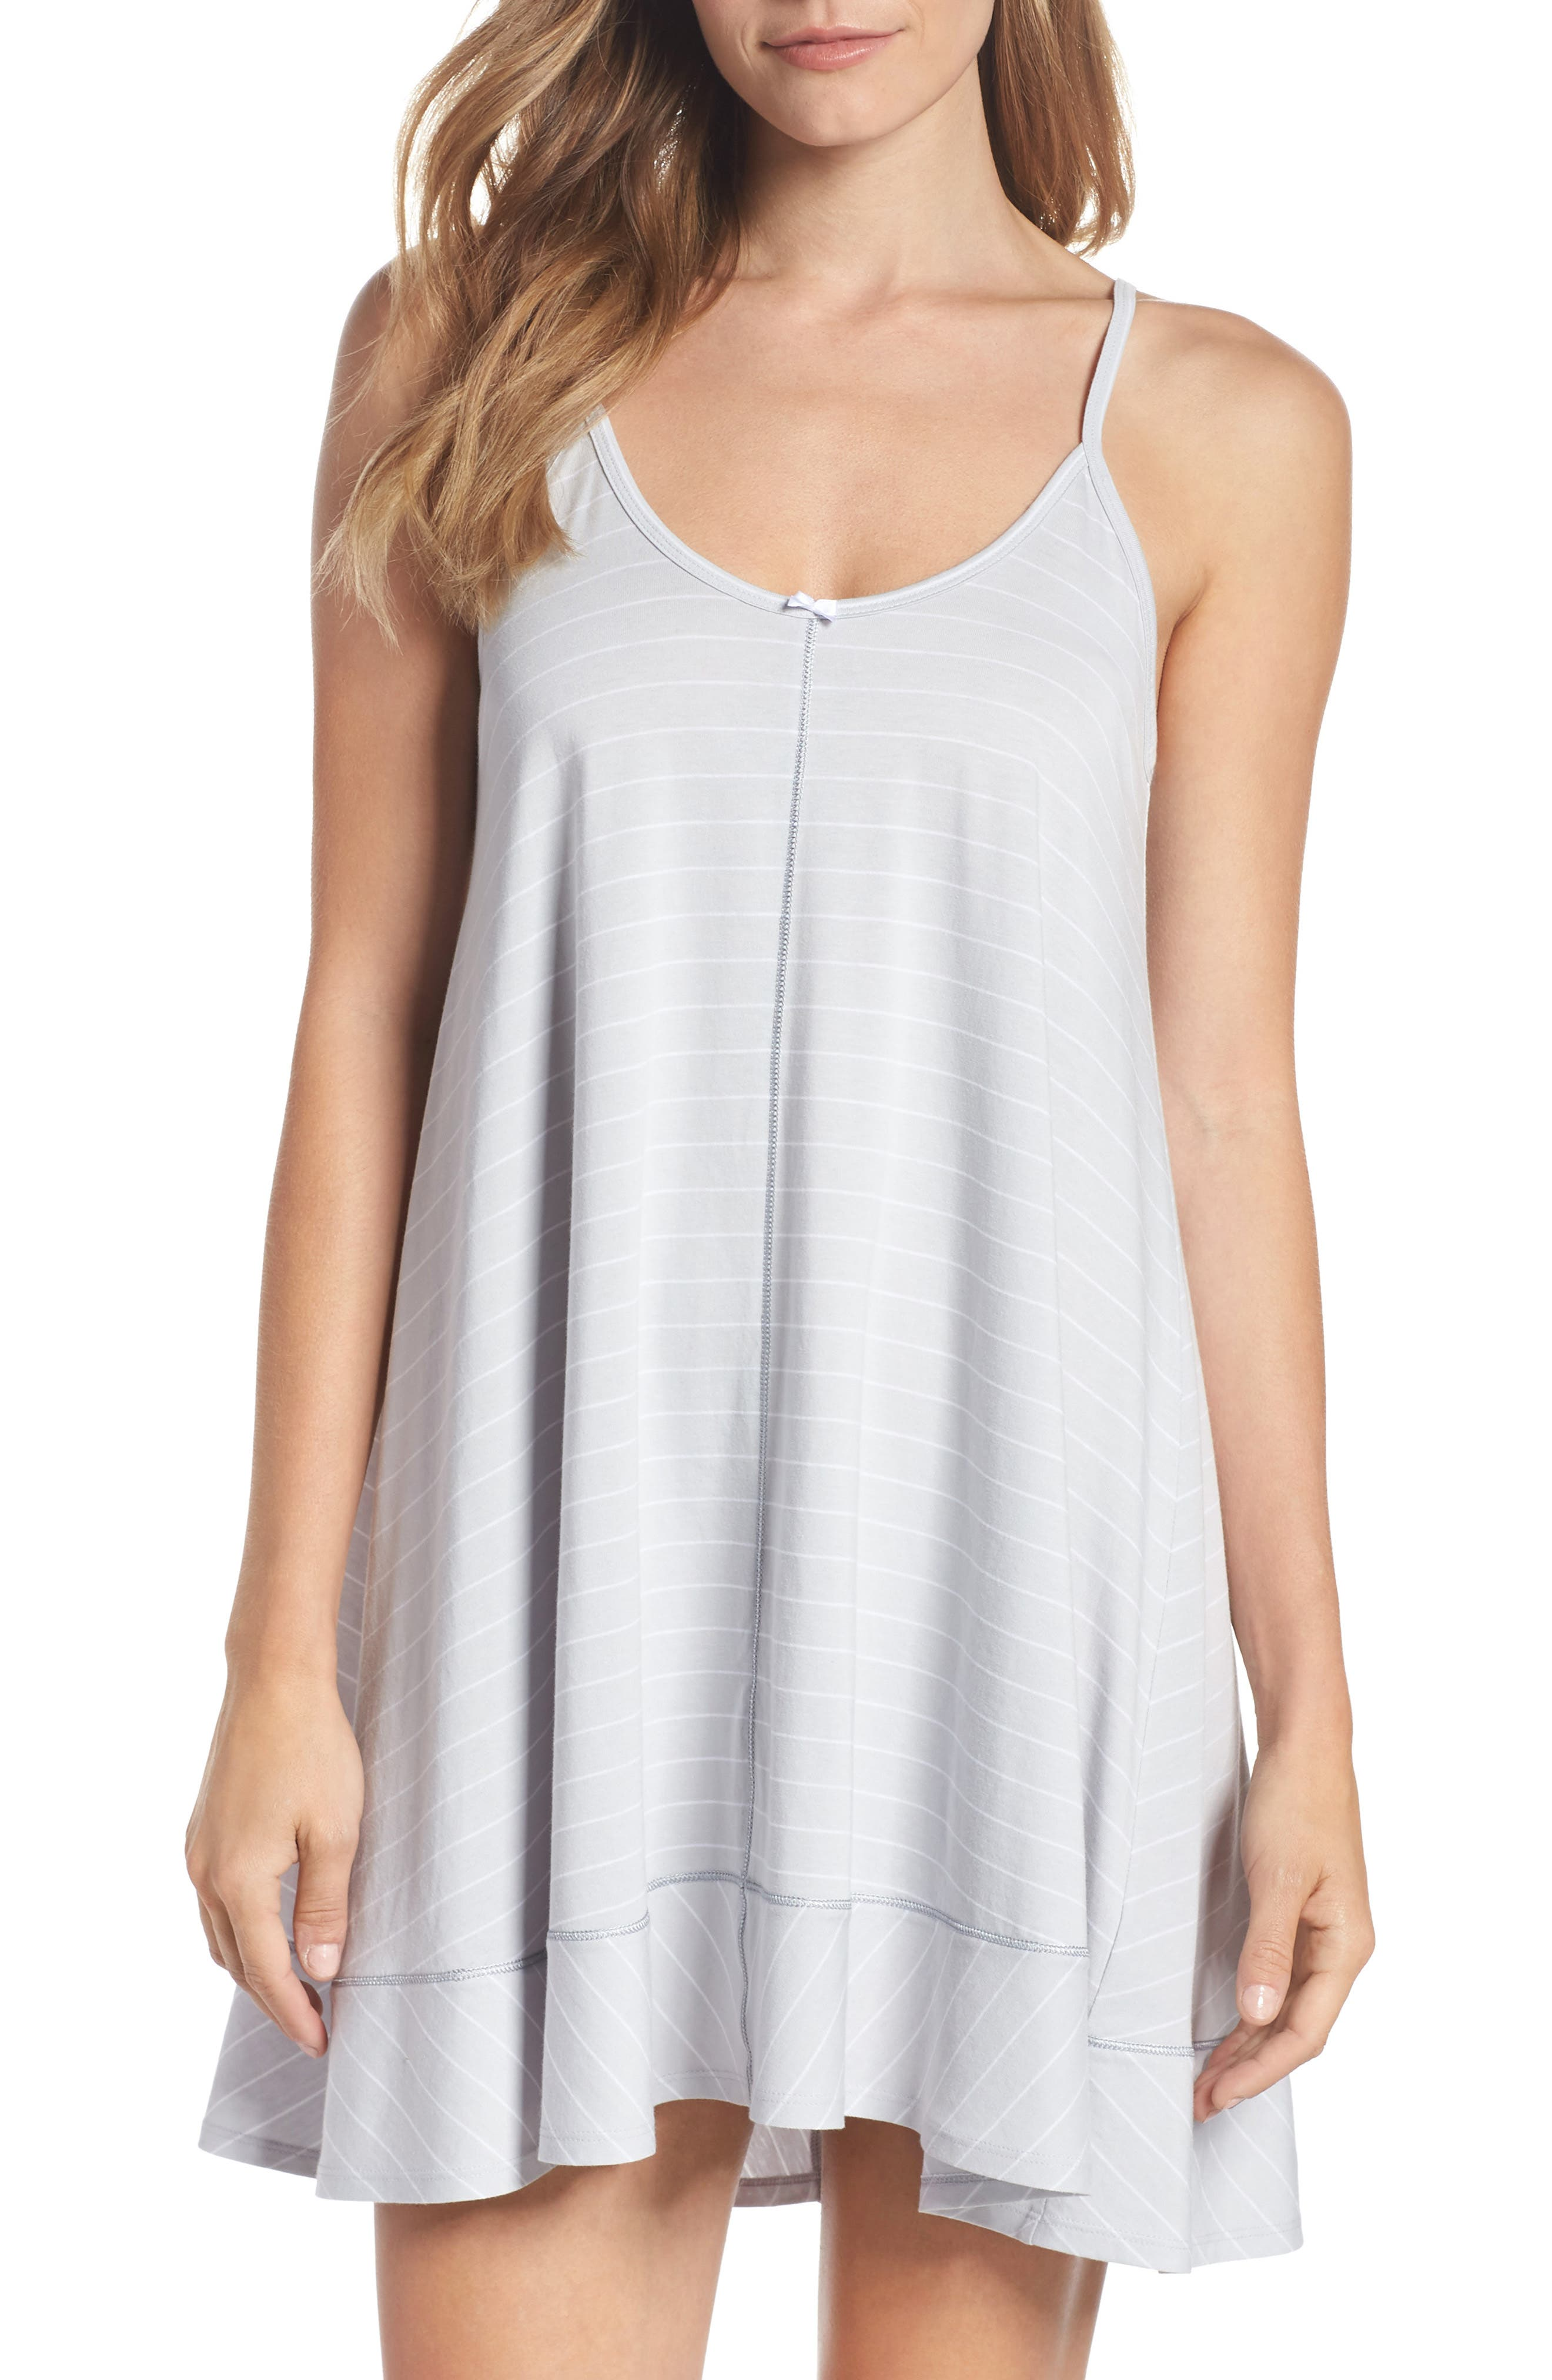 Swing Chemise,                         Main,                         color, MICROCHIP GRAY STRIPE